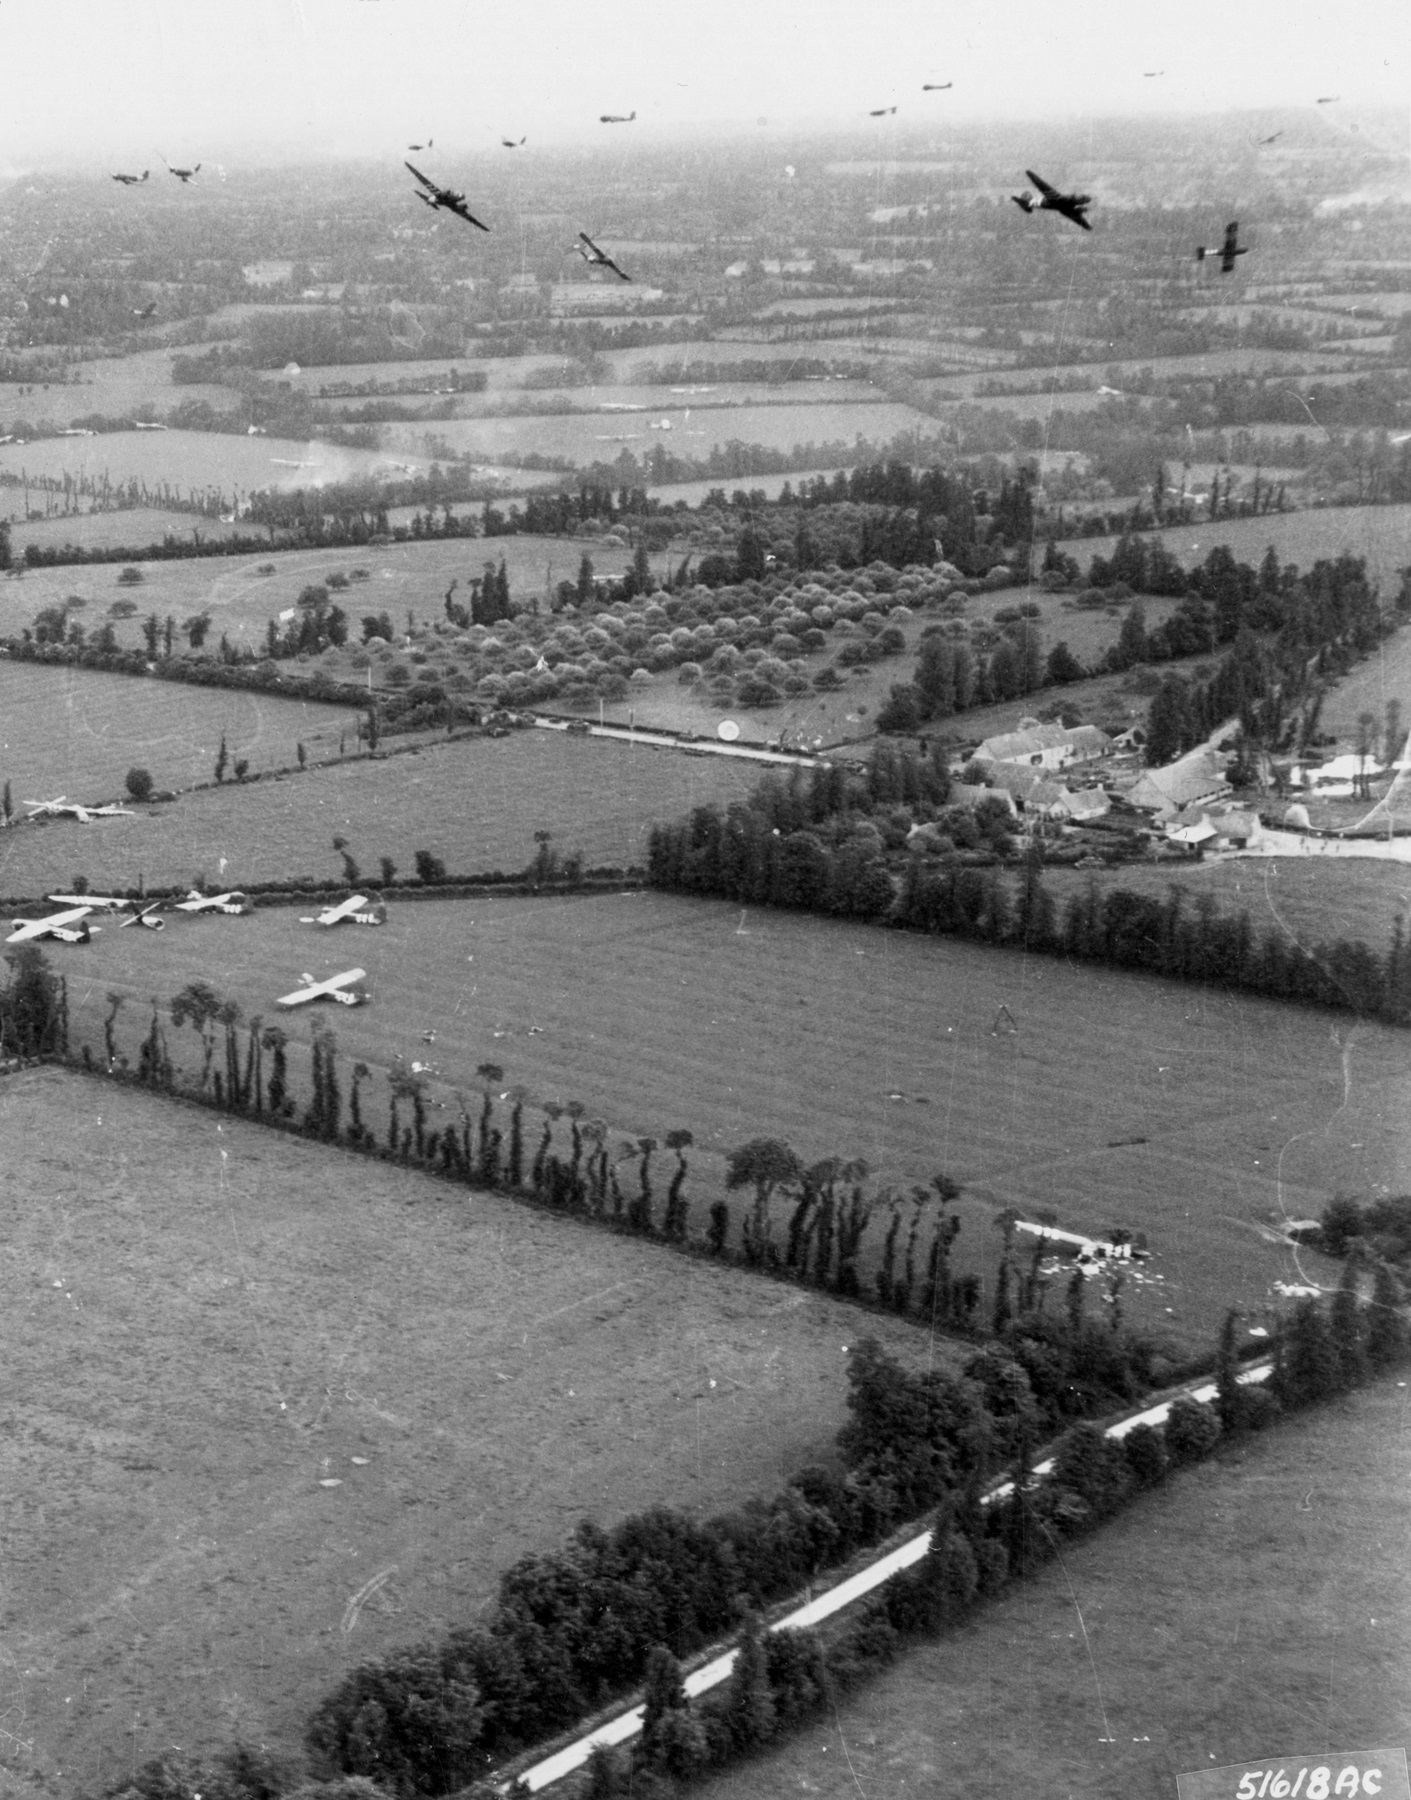 Gliders are delivered to the Cotentin Peninsula by Douglas C-47 Skytrains